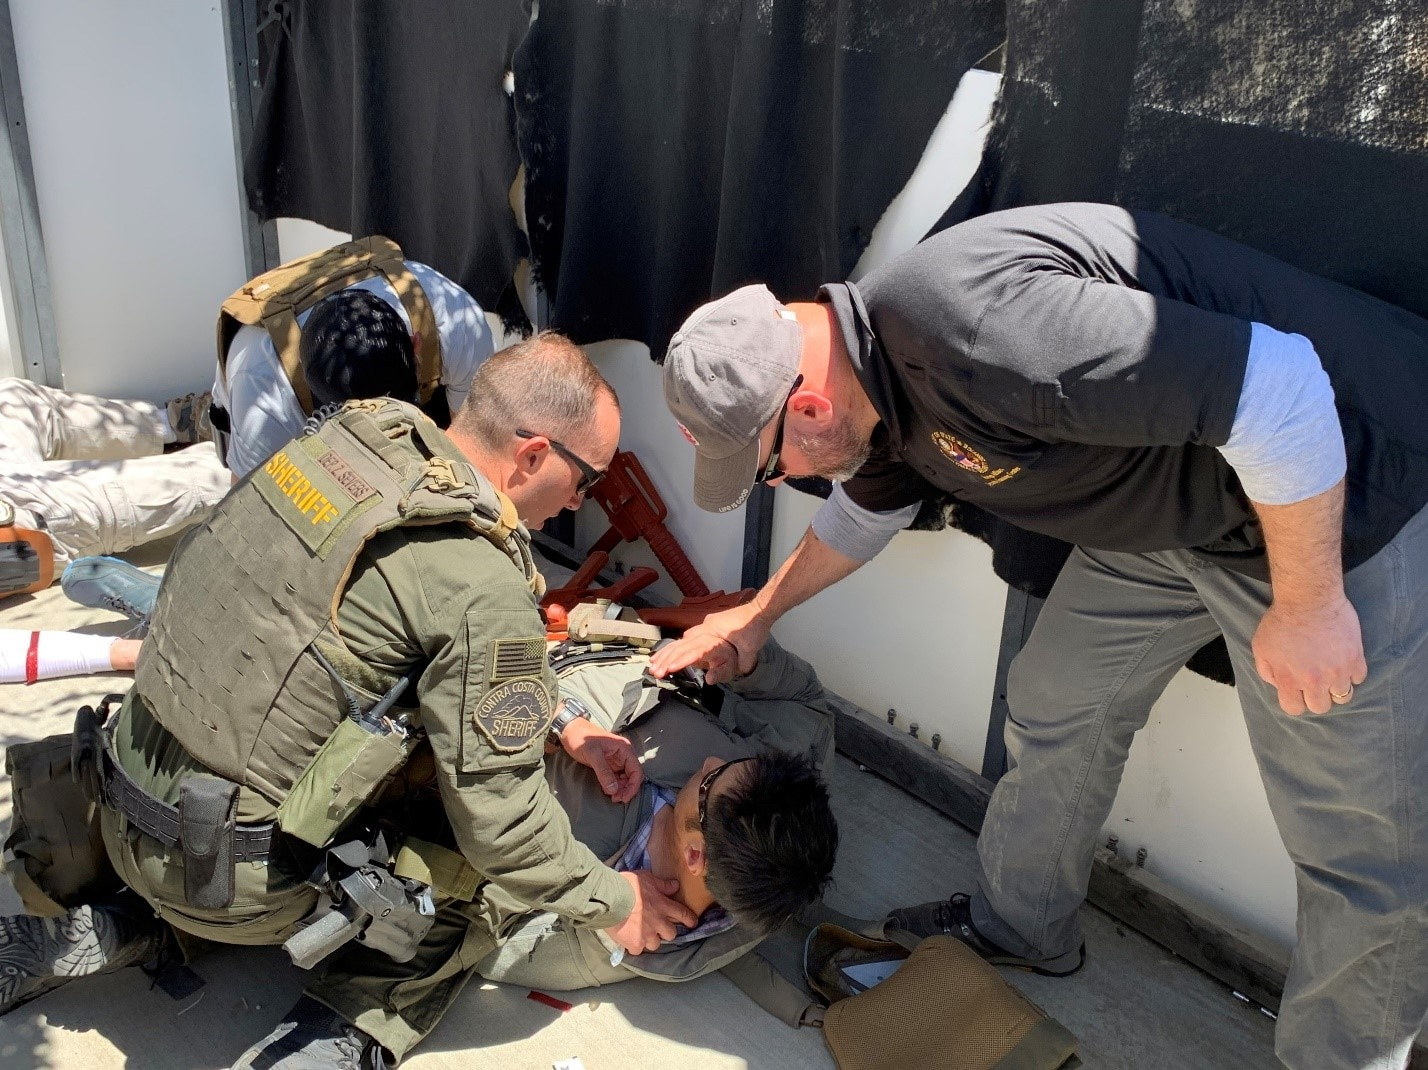 A Diplomatic Security Service (DSS) special agent (back left) and a Contra Costa County Sheriff SWAT operator (left foreground) provide medical care under the guidance of a DSS operational medicine instructor (far right), Clayton, Calif. May 2021, (U.S. Department of State photo)